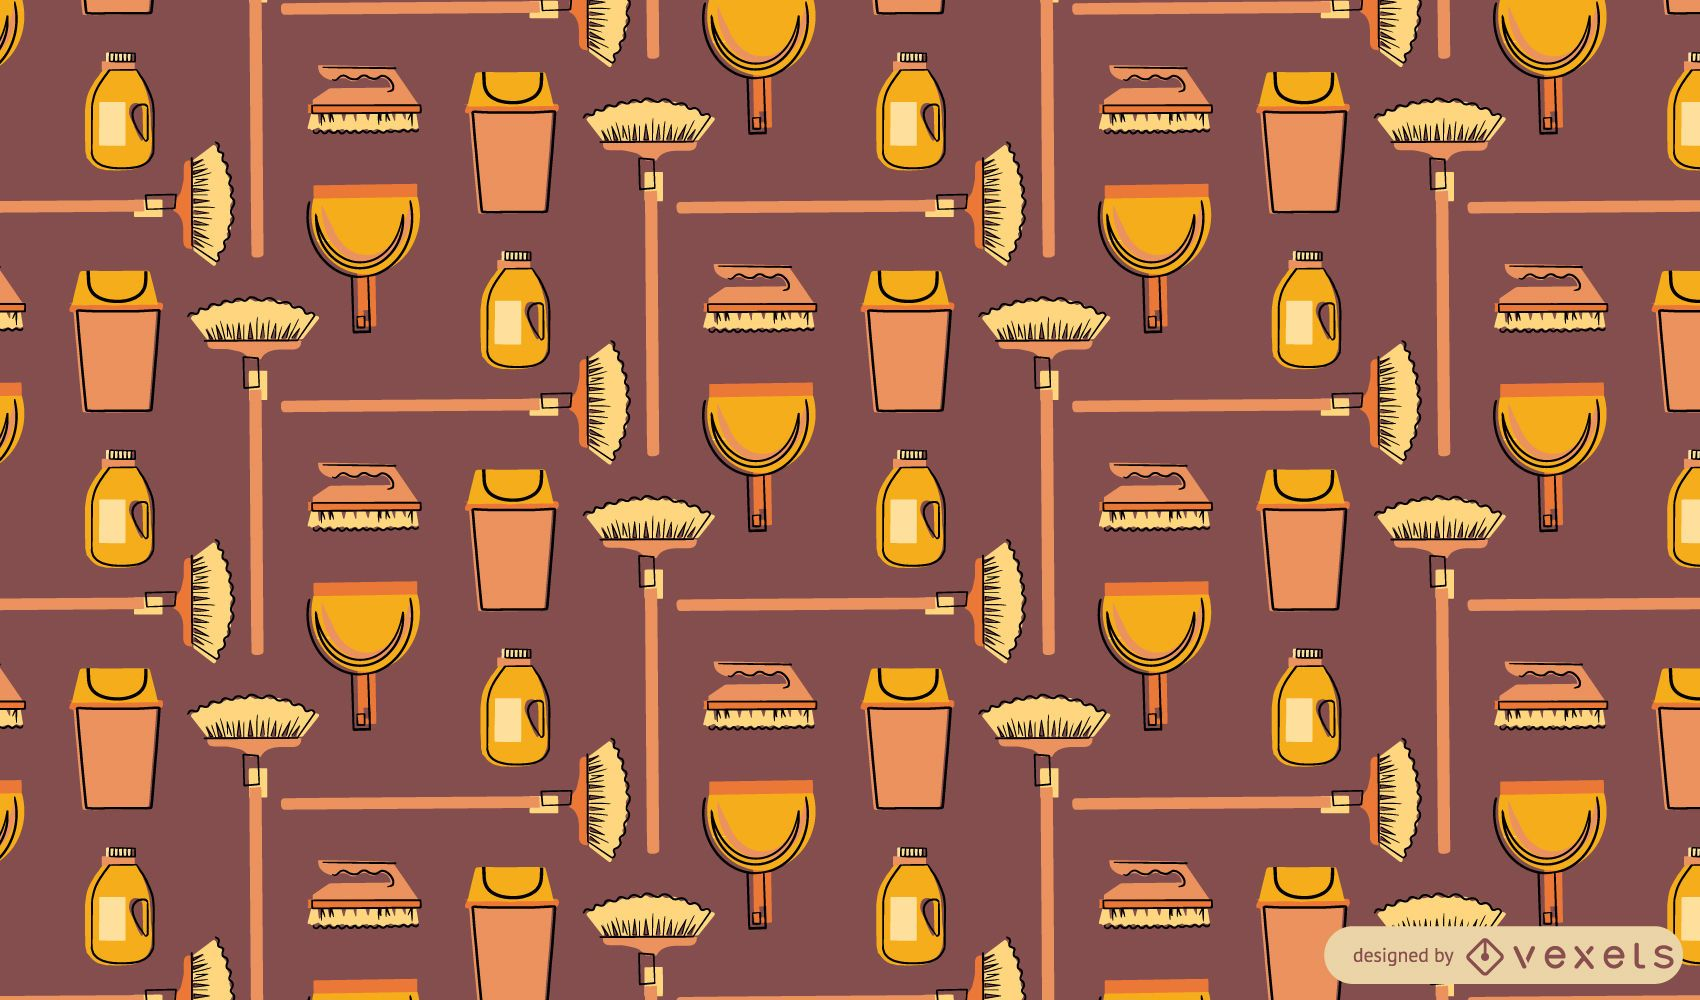 Cleaning elements pattern design